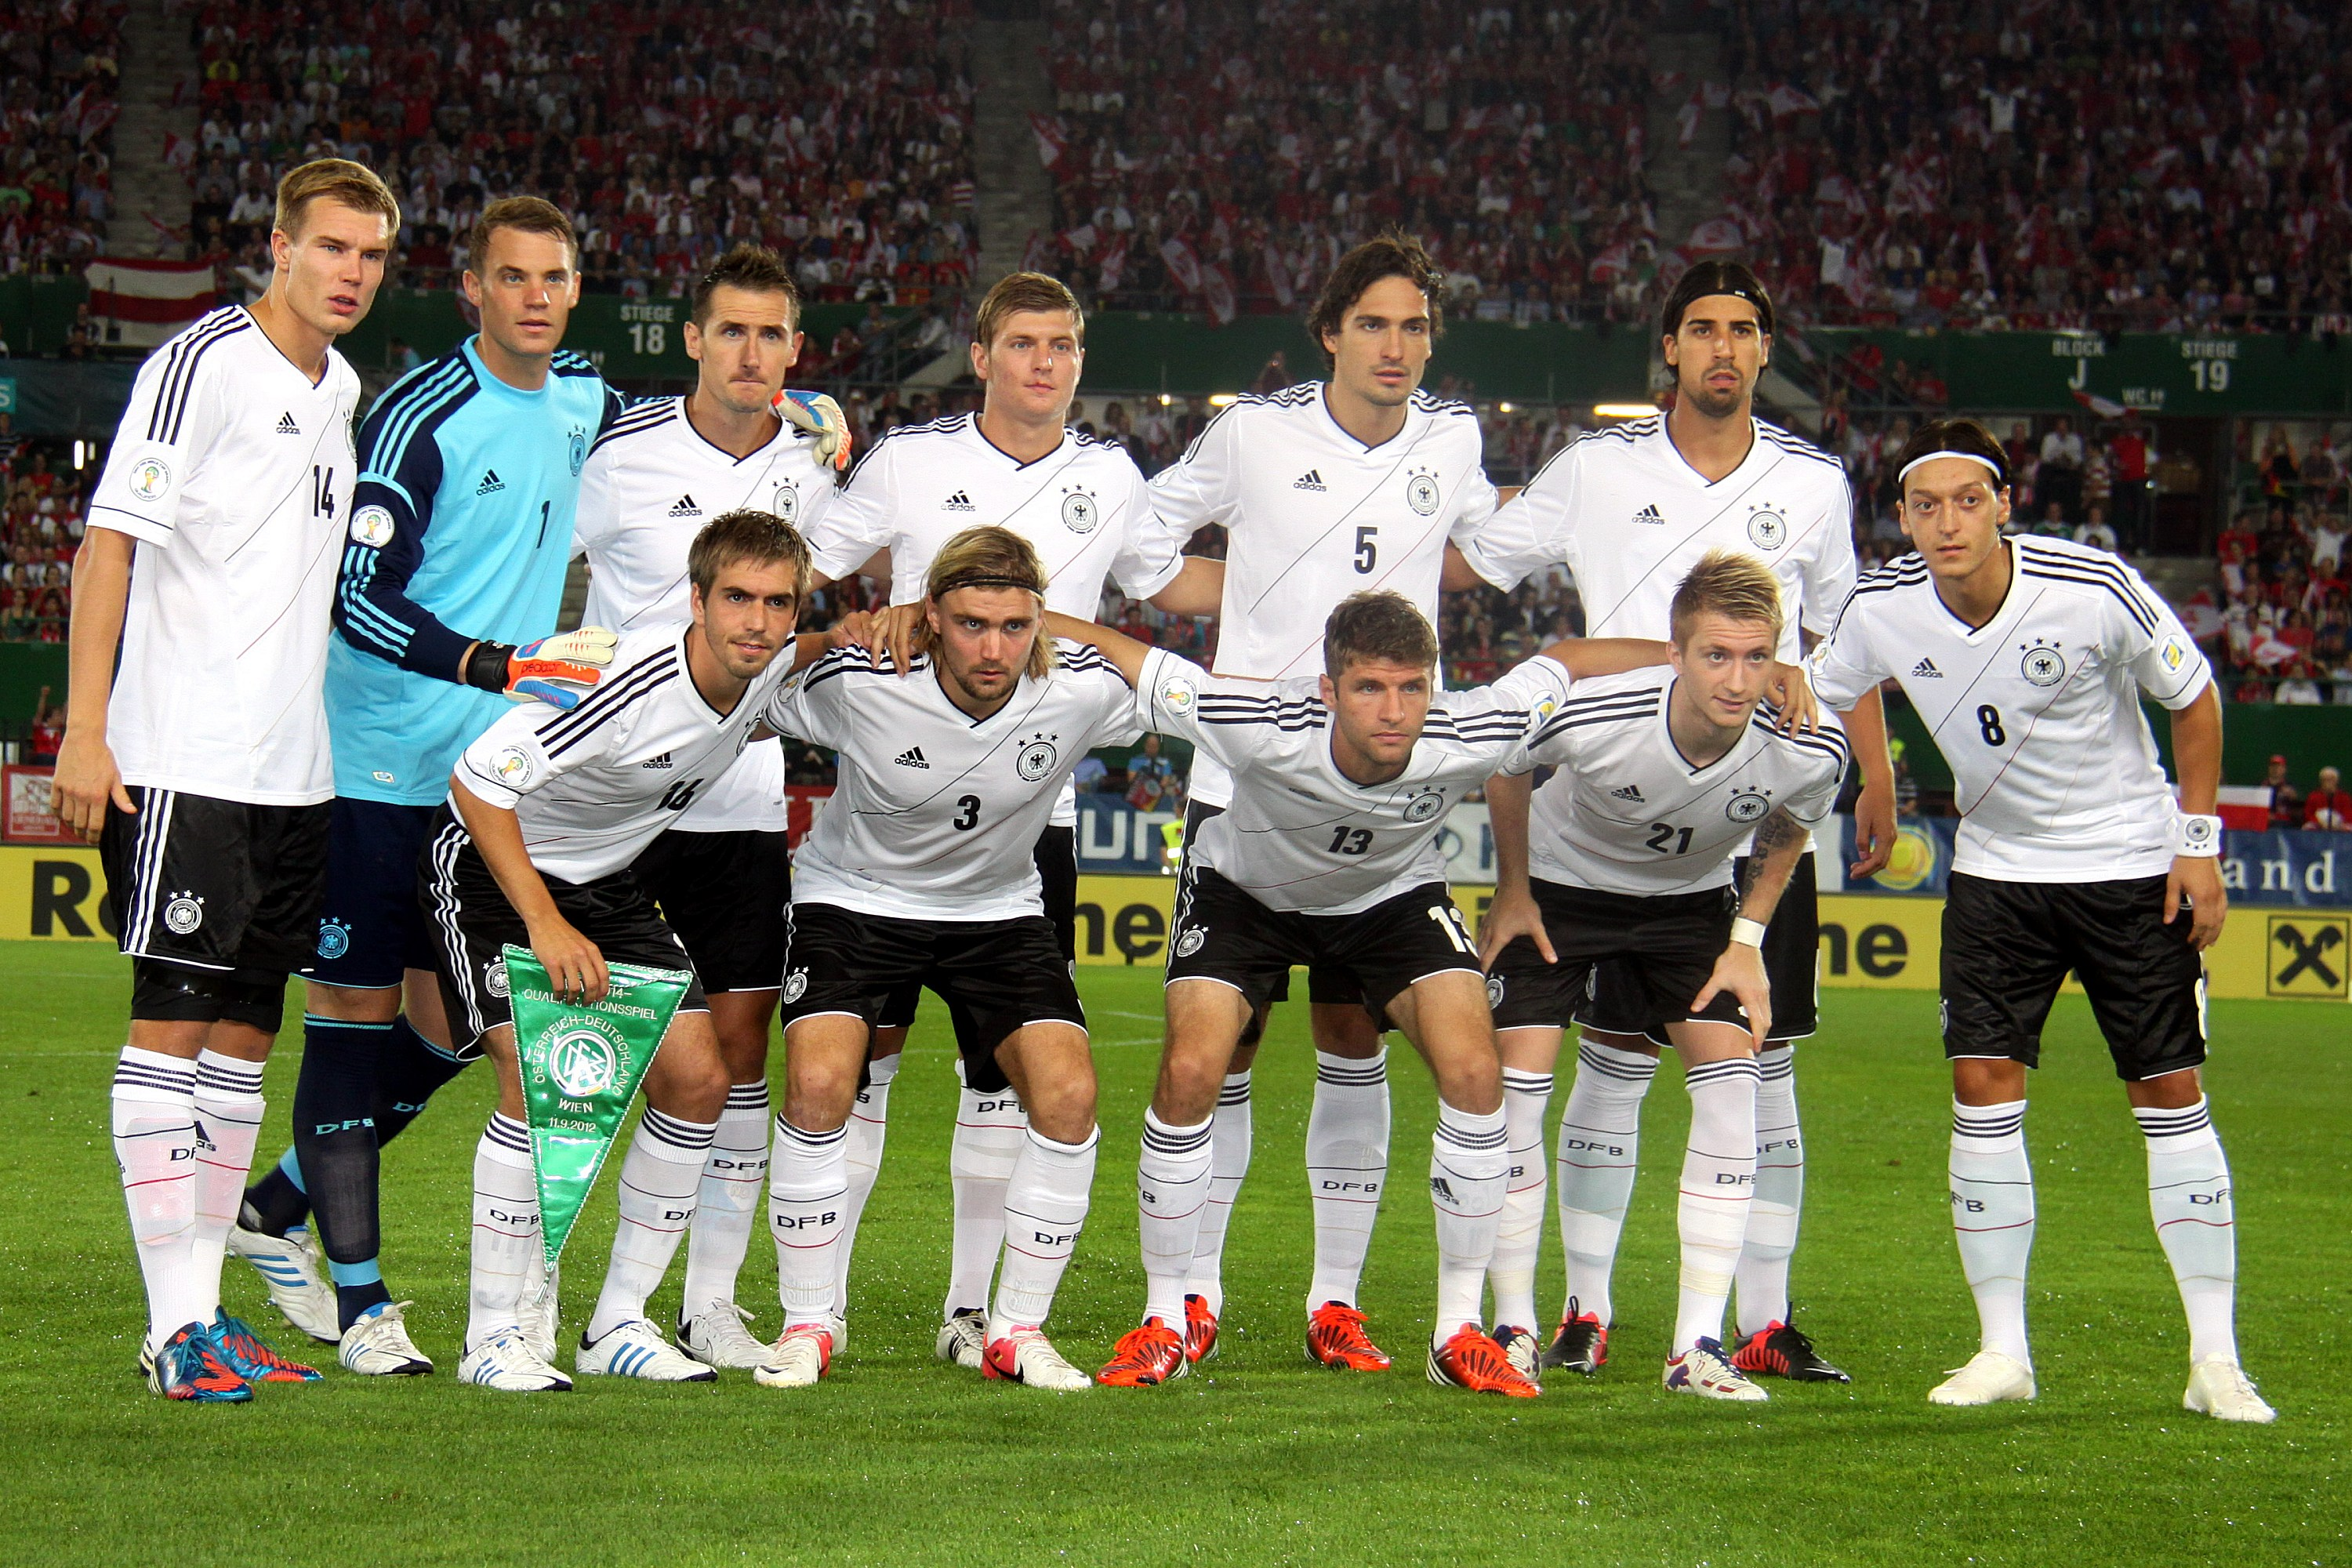 Germany National Football Team 2013 HD Wallpaper 3000x2000